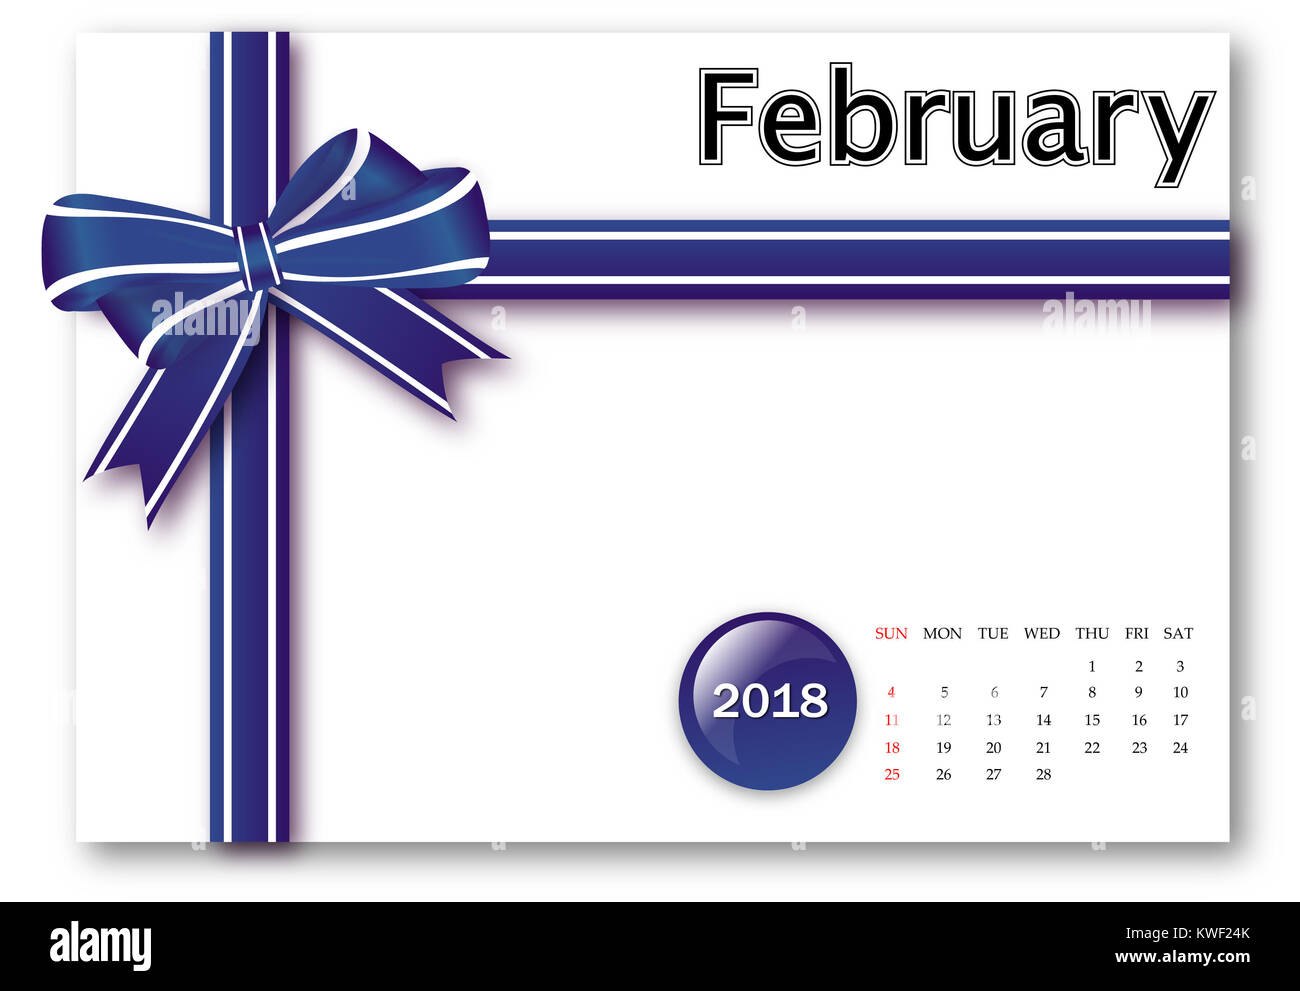 February 2018 - Calendar series with gift ribbon design - Stock Image